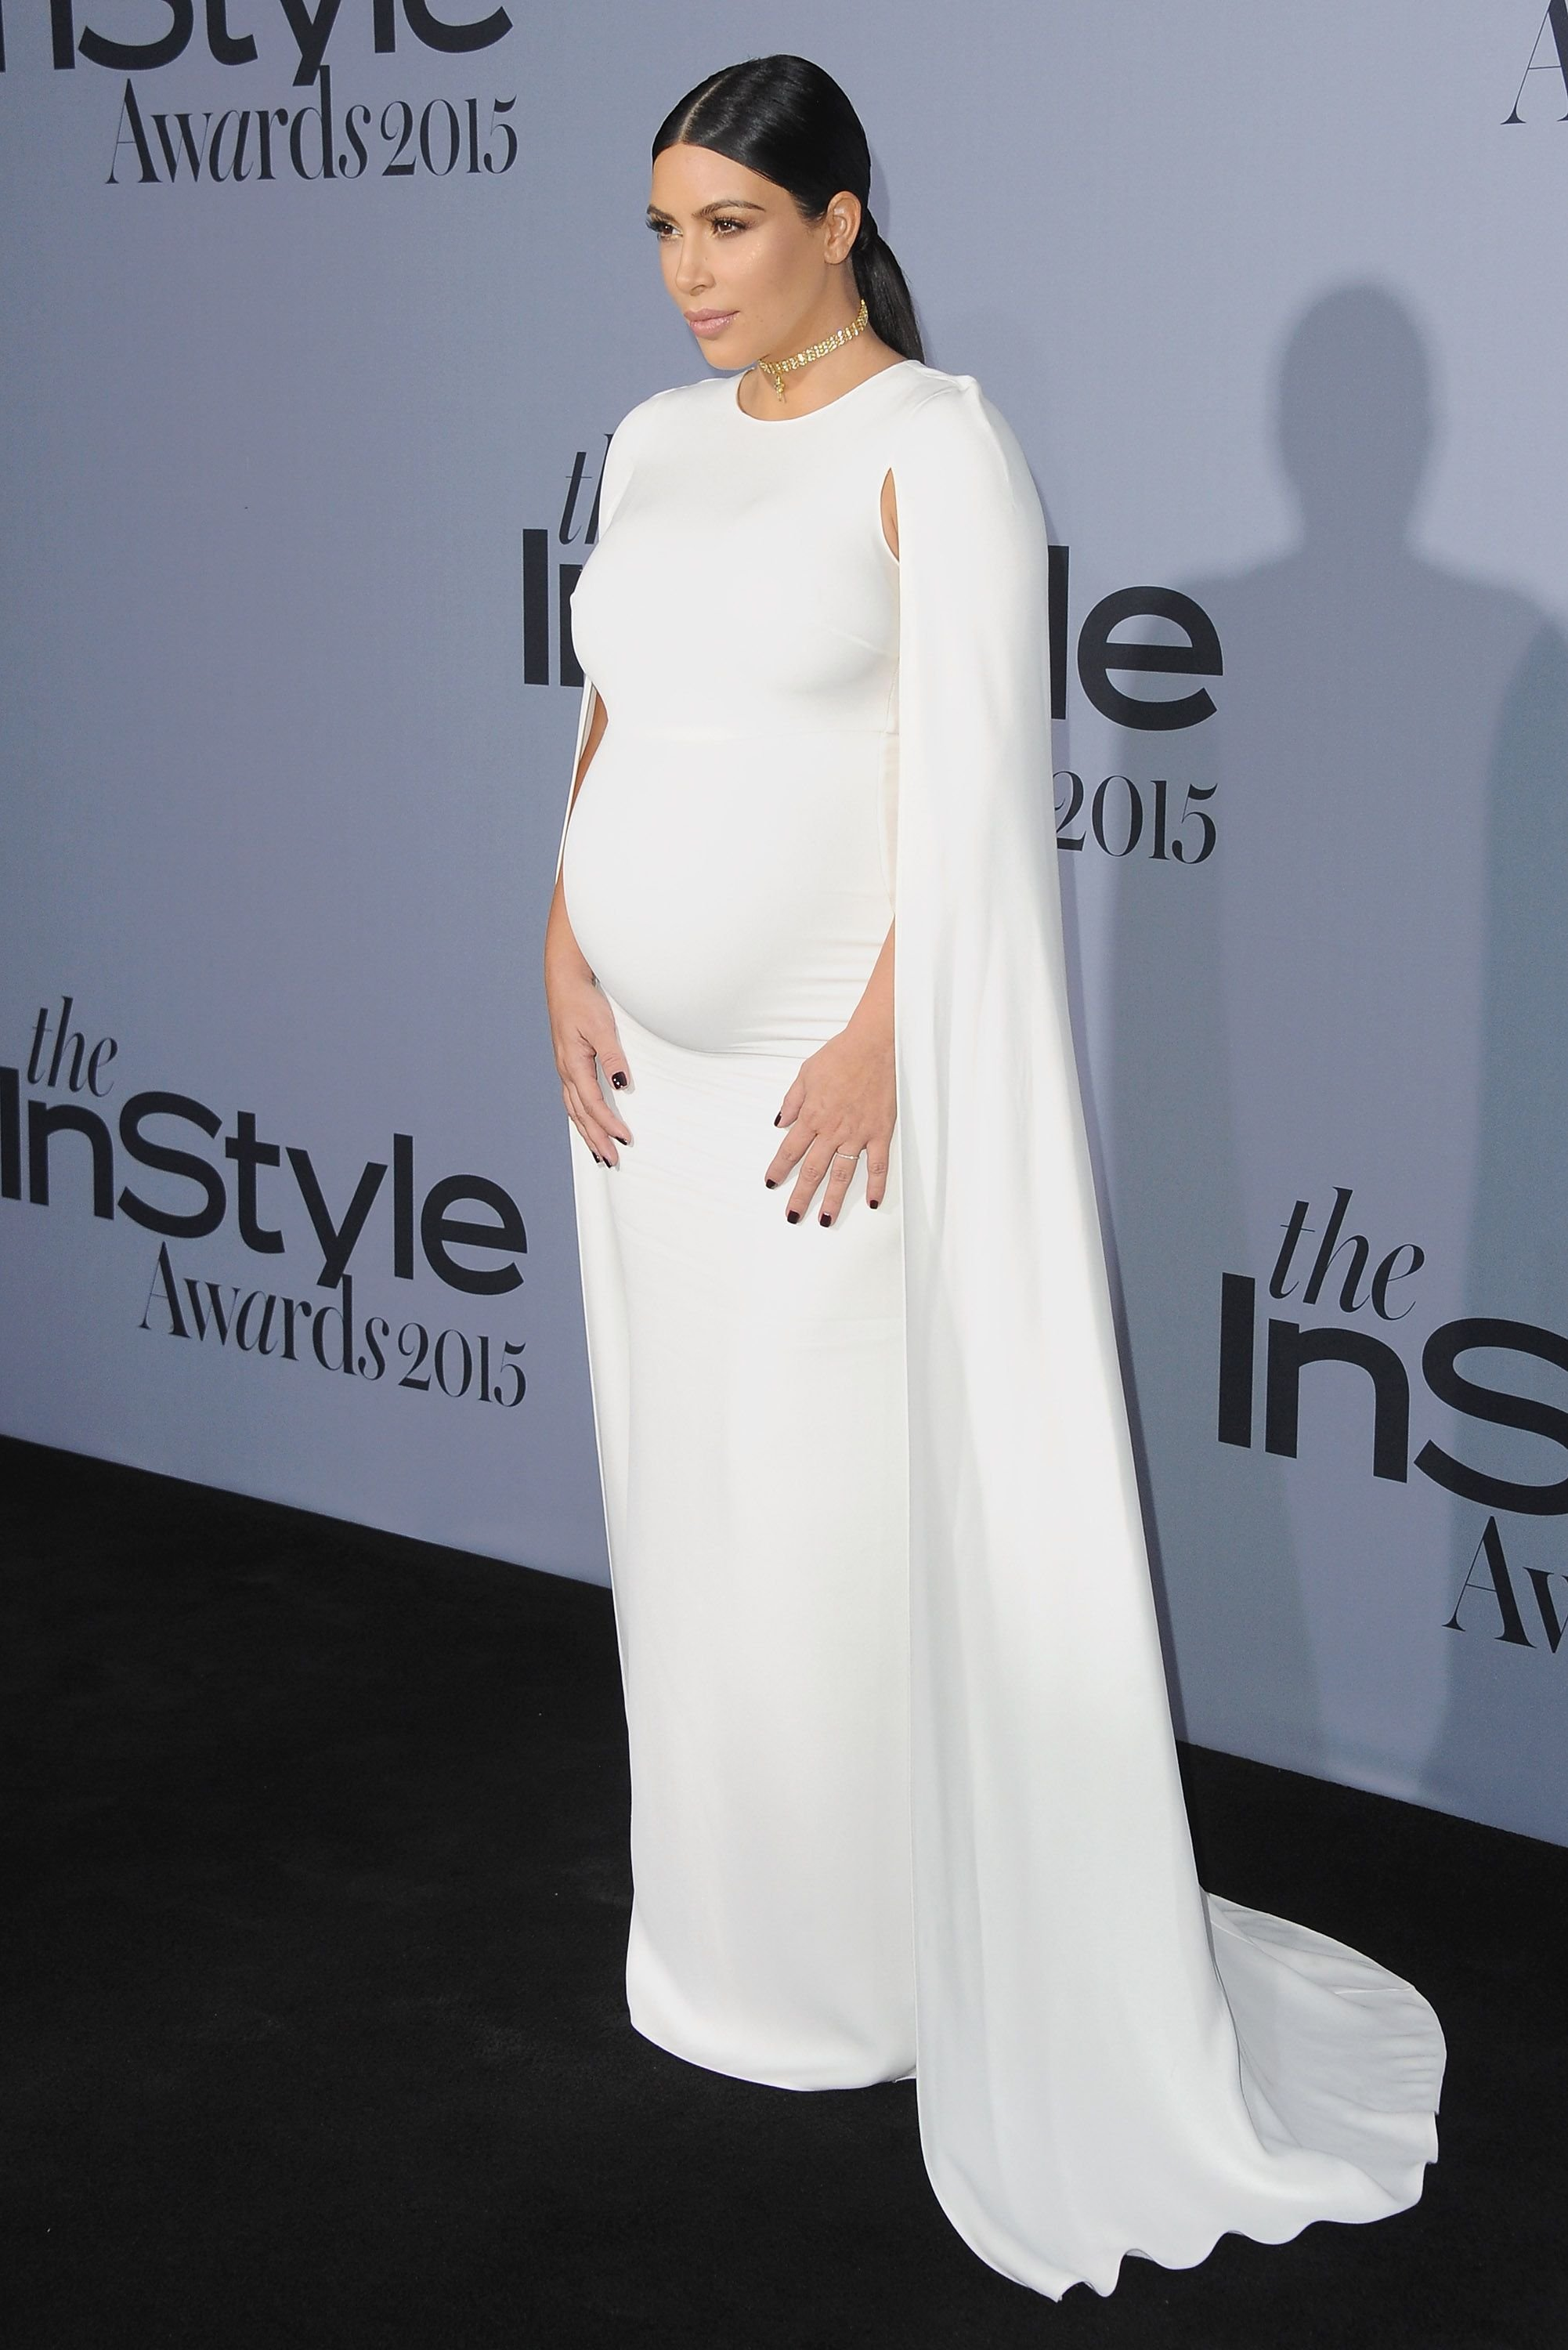 Kim Kardashian poses at the InStyle Awards red carpet in October 2016| Photo: Getty Images